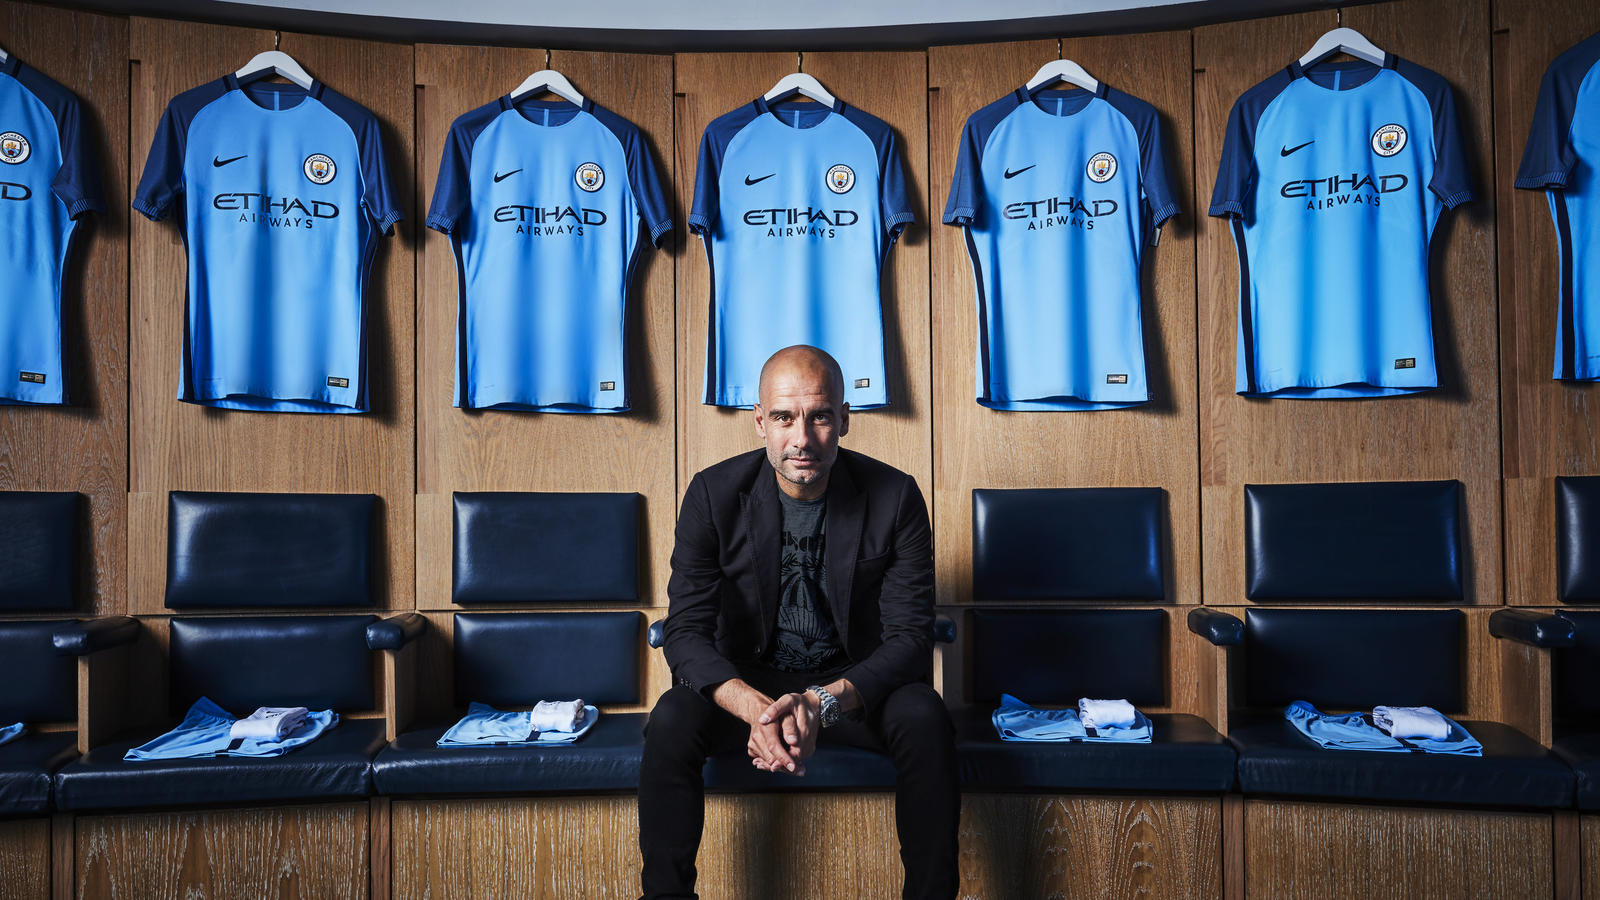 b8176560a NIKE Manchester City Guardiola. Manchester City manager Pep Guardiola and  the 2016-17 Manchester City home kit. NIKE Manchester City Athletes01